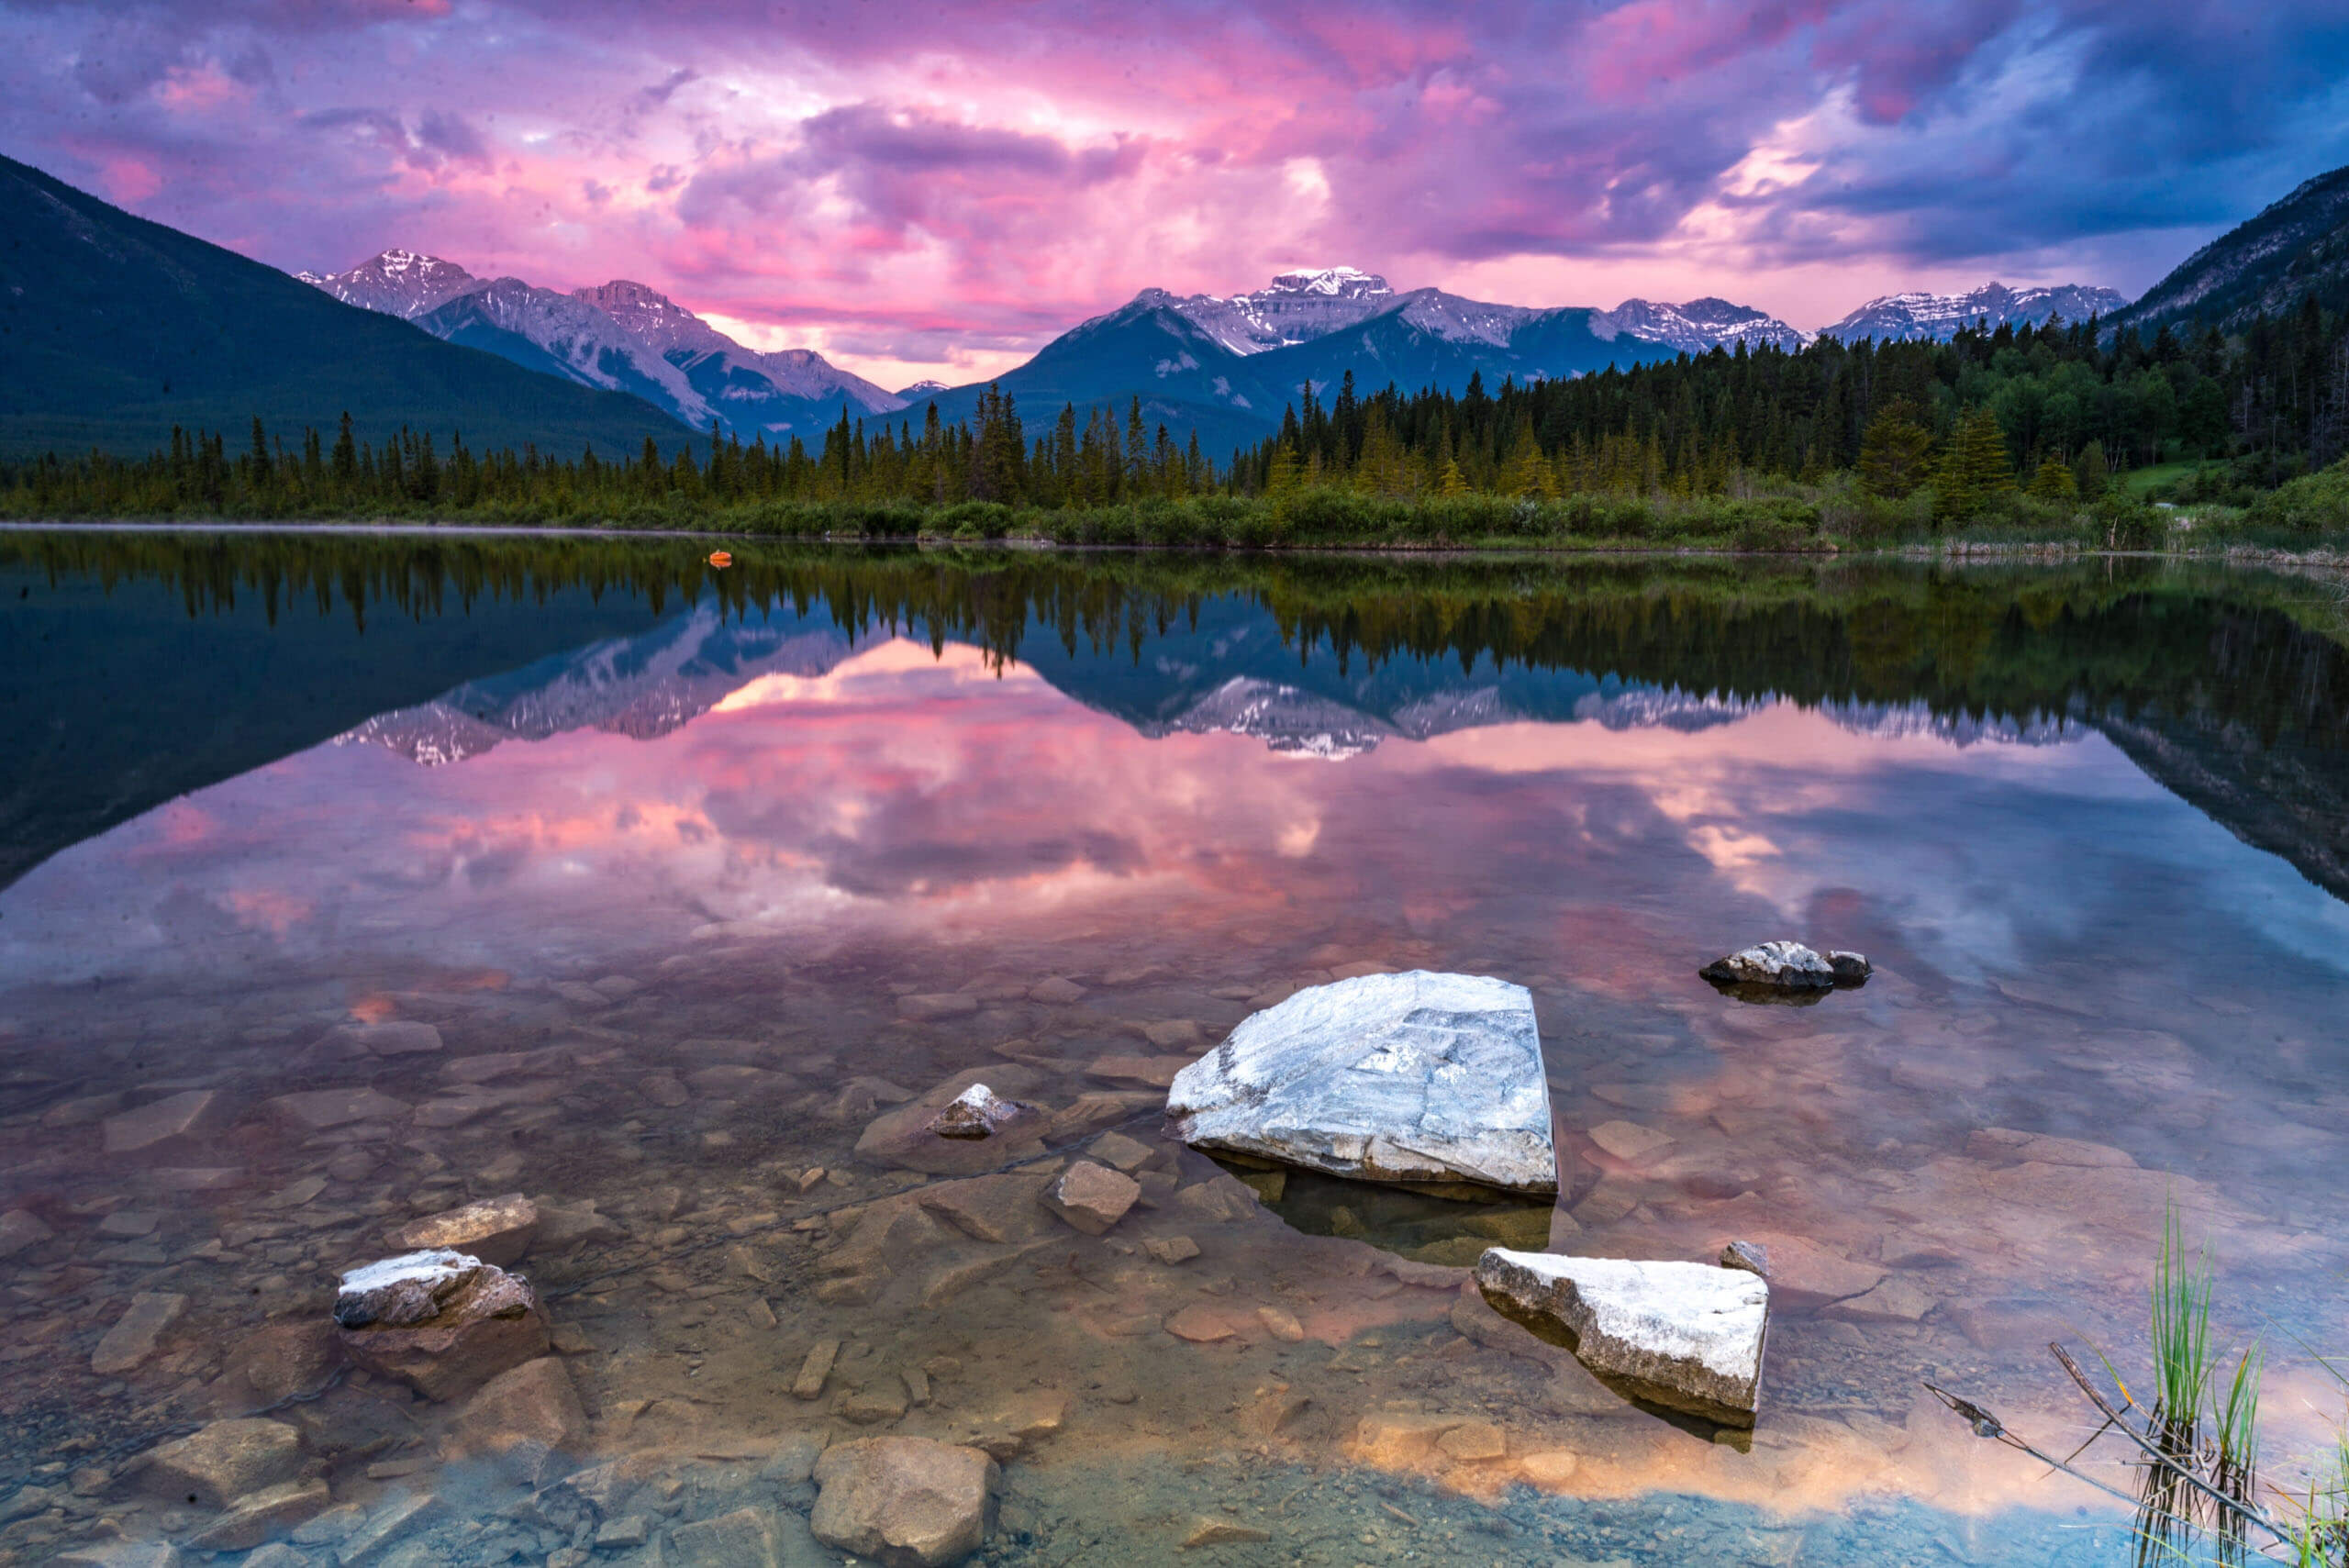 View of Vermilion Lakes Road, Banff. Picture by Kevin Noble on Unsplash